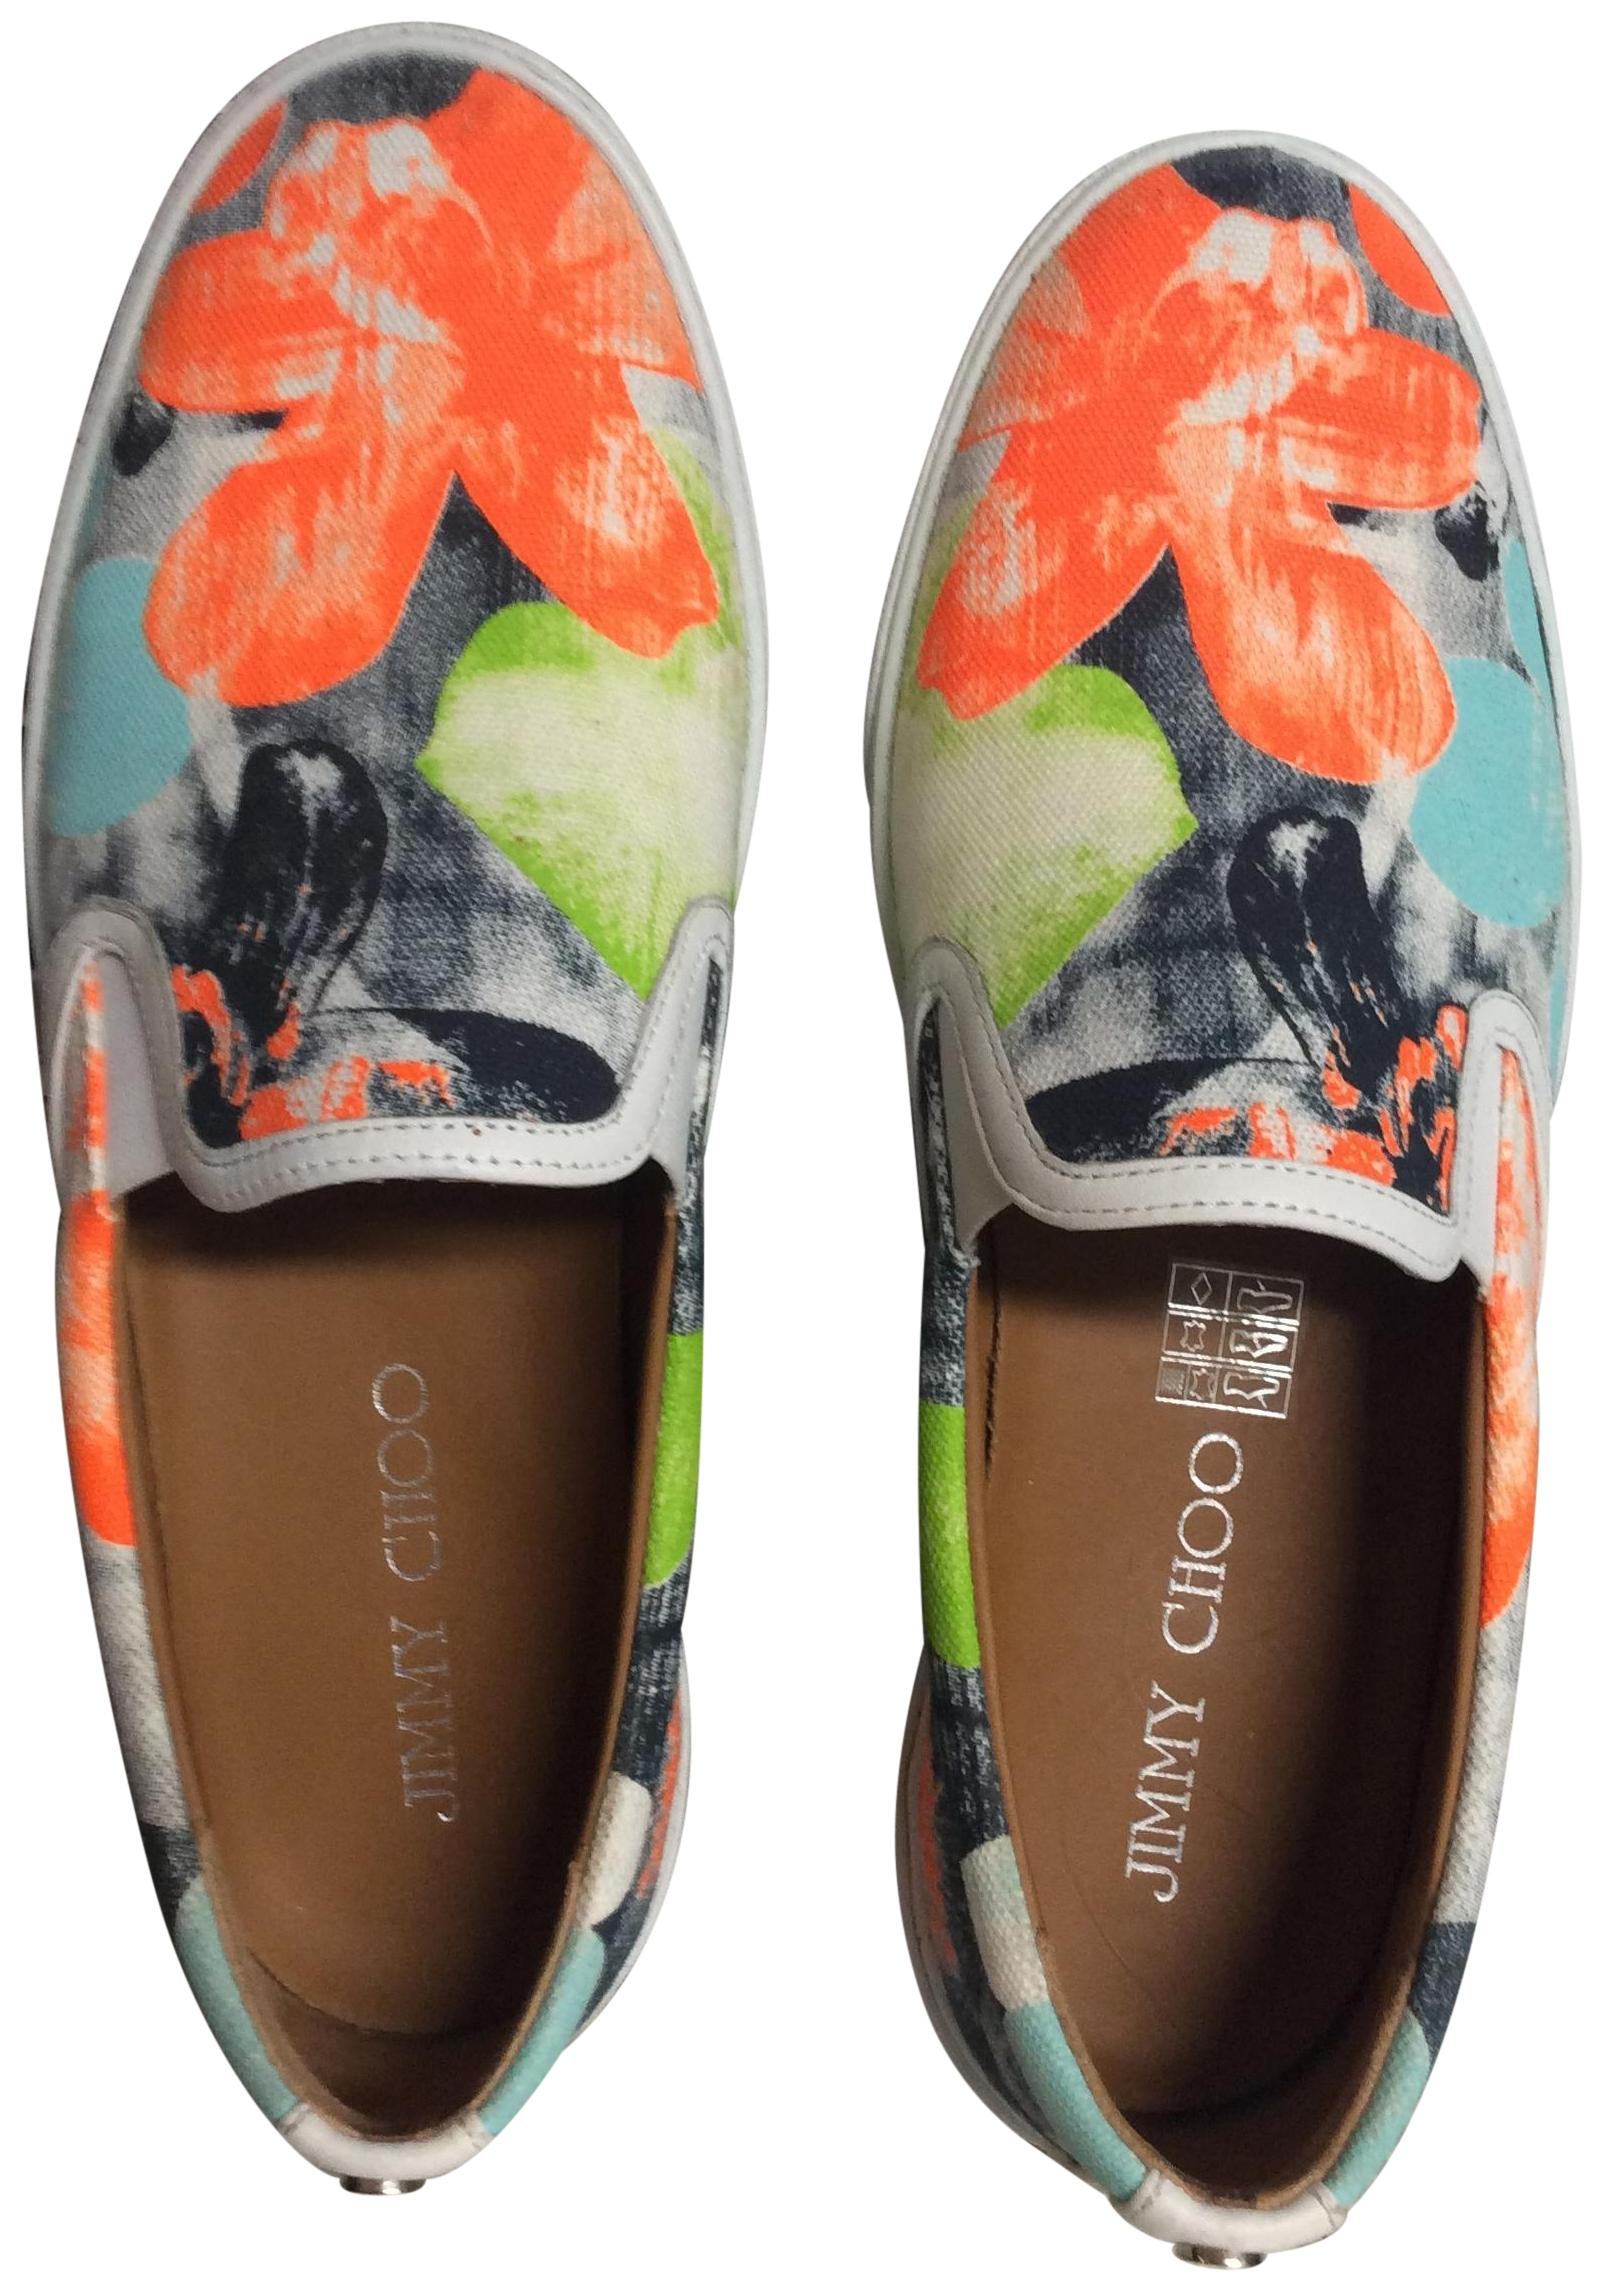 Jimmy Choo Multicolor Demi Neon Flame Slip-on Sneakers Sneakers Size US 8 Regular (M, B)